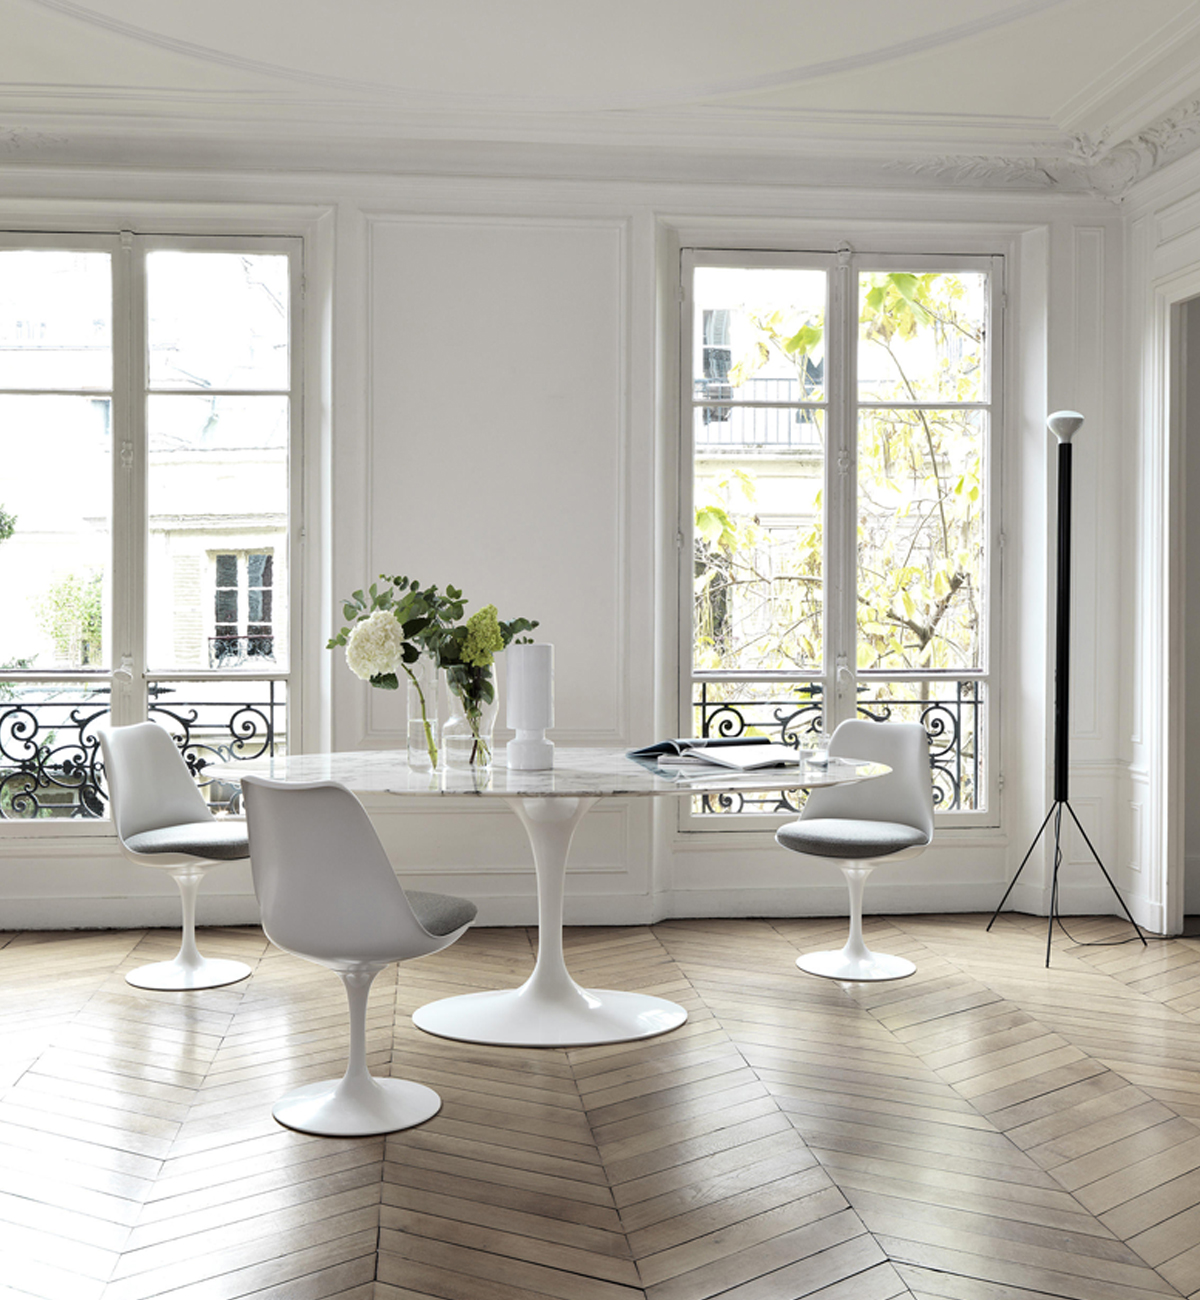 Knoll Tulip Dining Chair and Table set